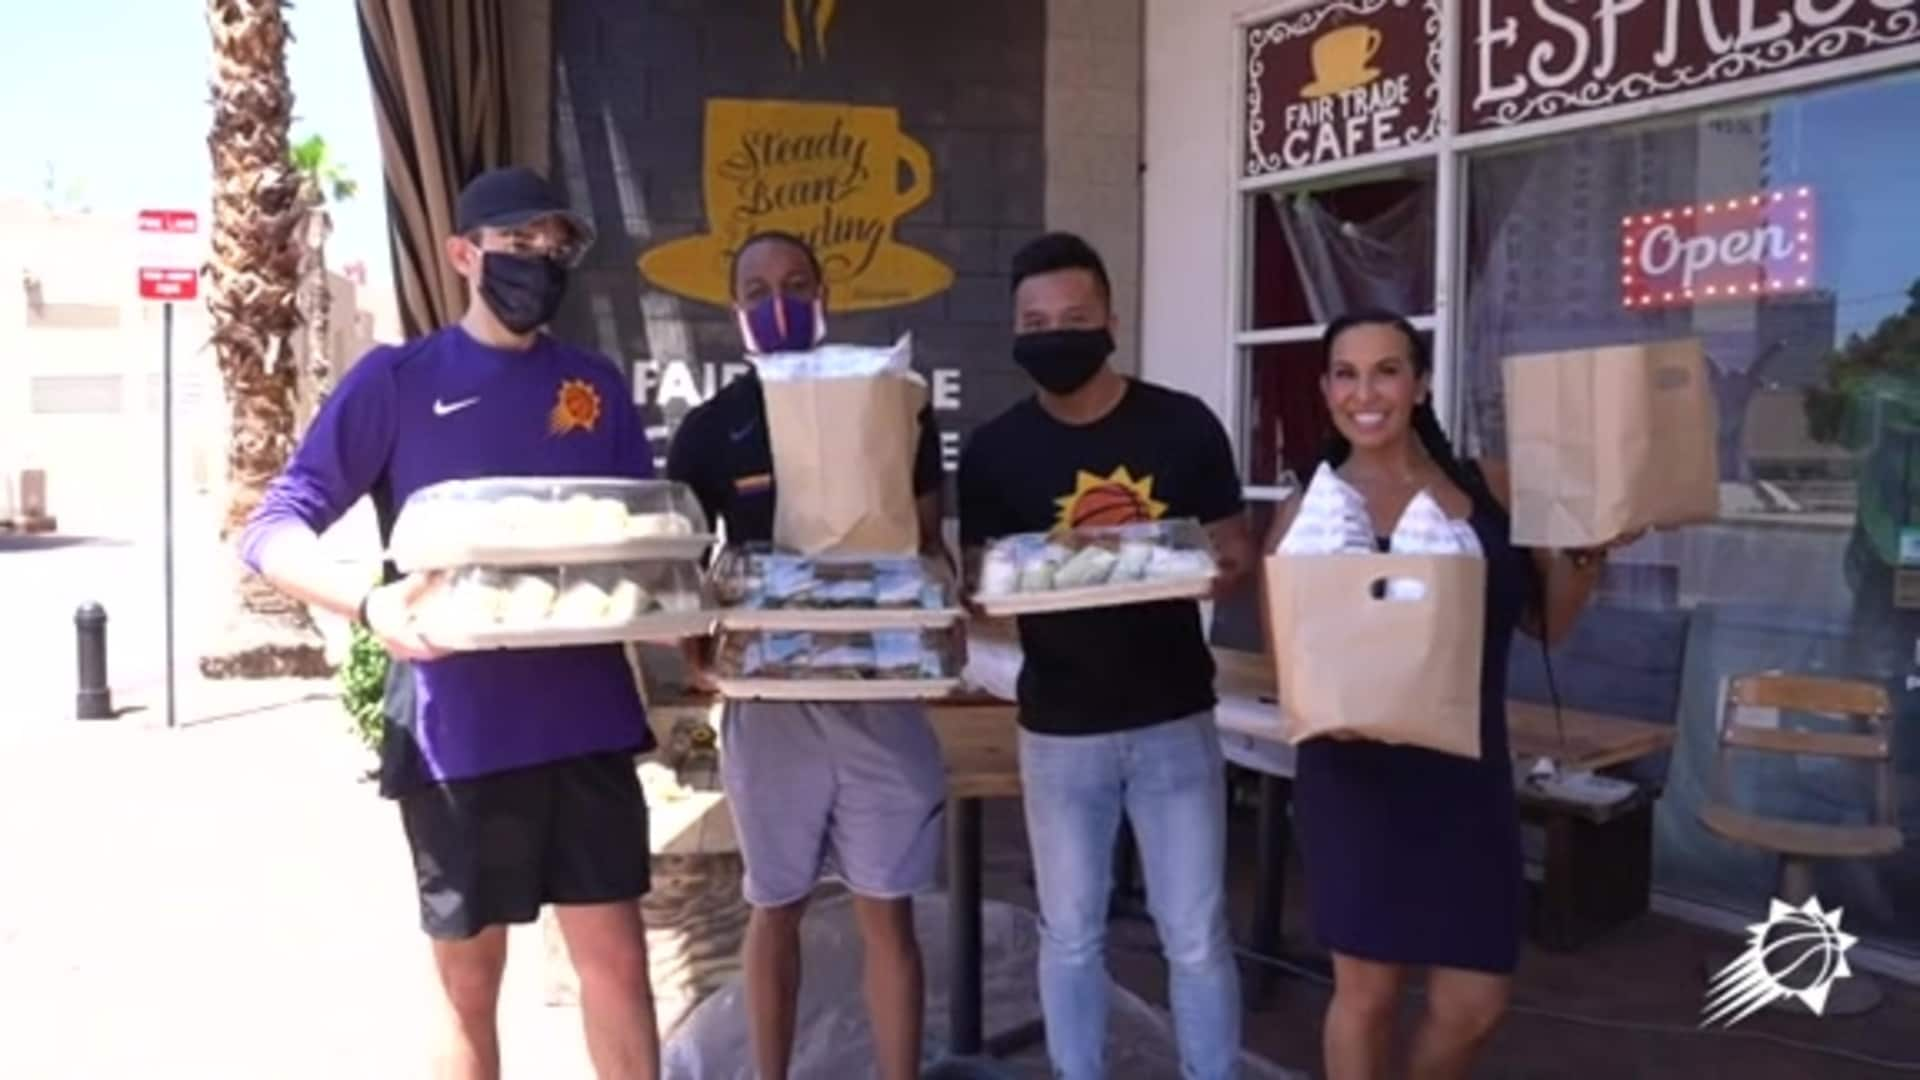 Fair Trade Cafe & Phoenix Suns Charities Food Delivery